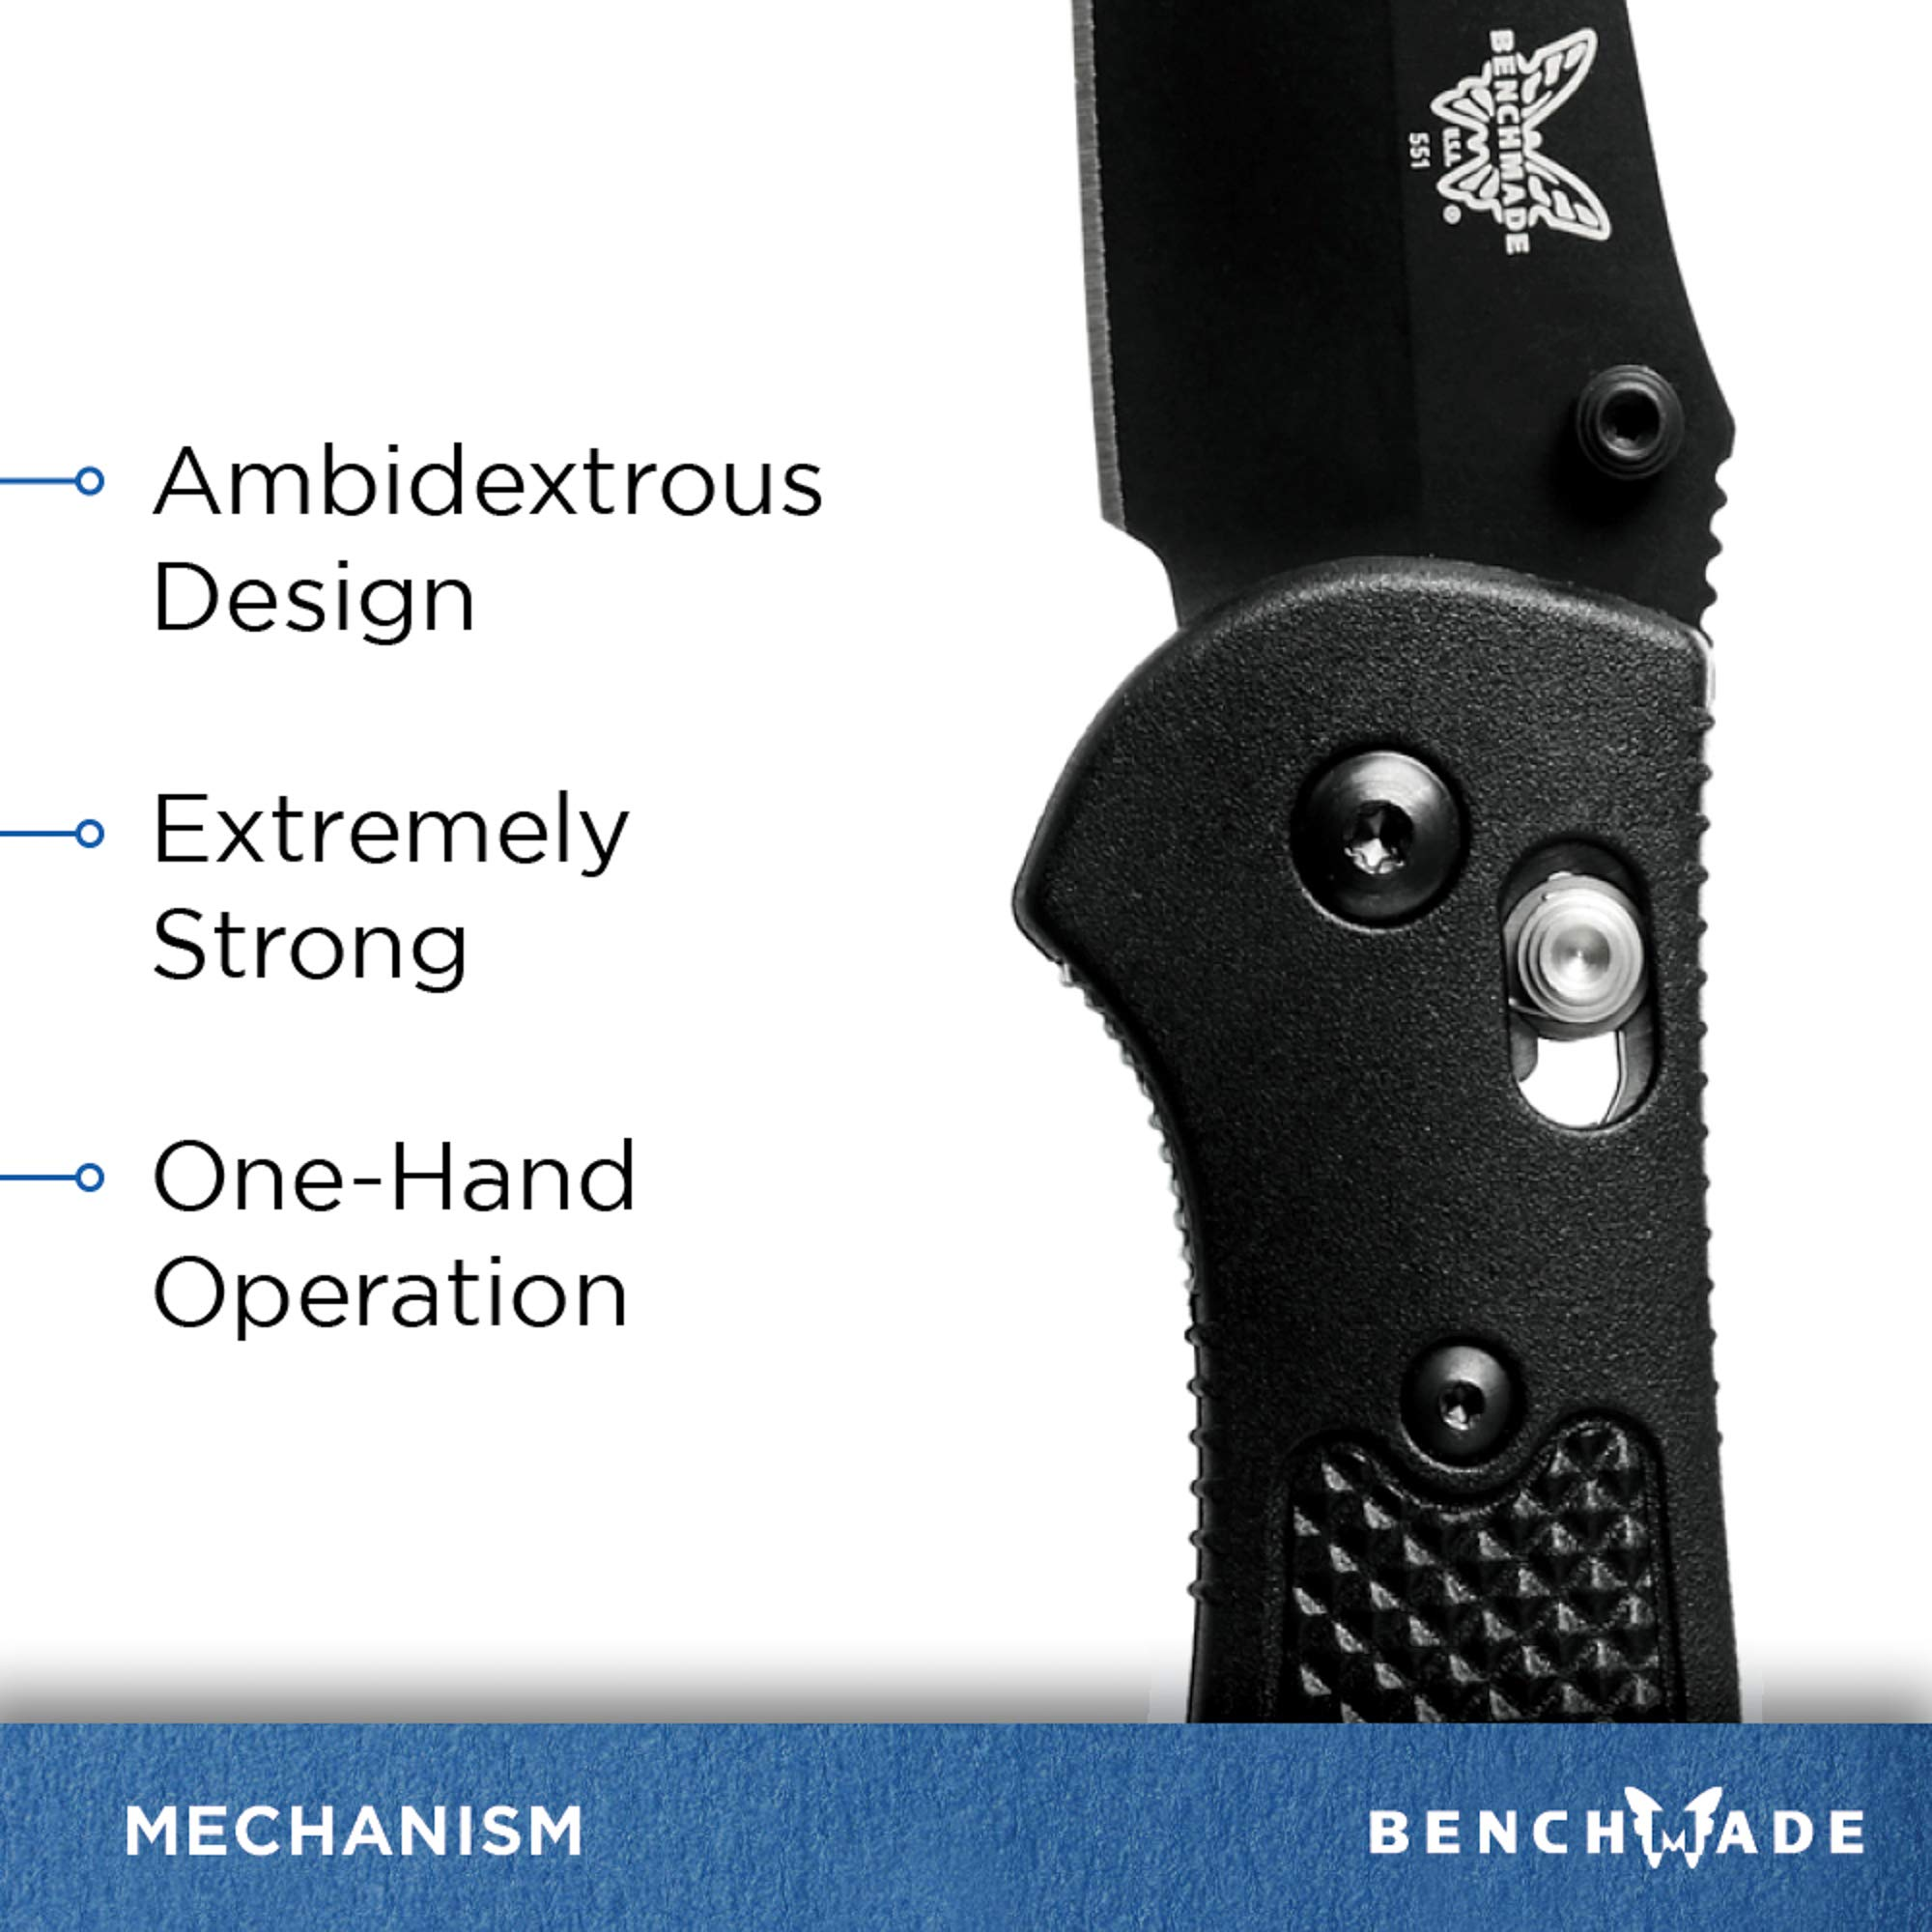 Benchmade - Griptilian 551 Knife with CPM-S30V Steel, Drop-Point Blade, Plain Edge, Coated Finish, Black Handle by Benchmade (Image #5)